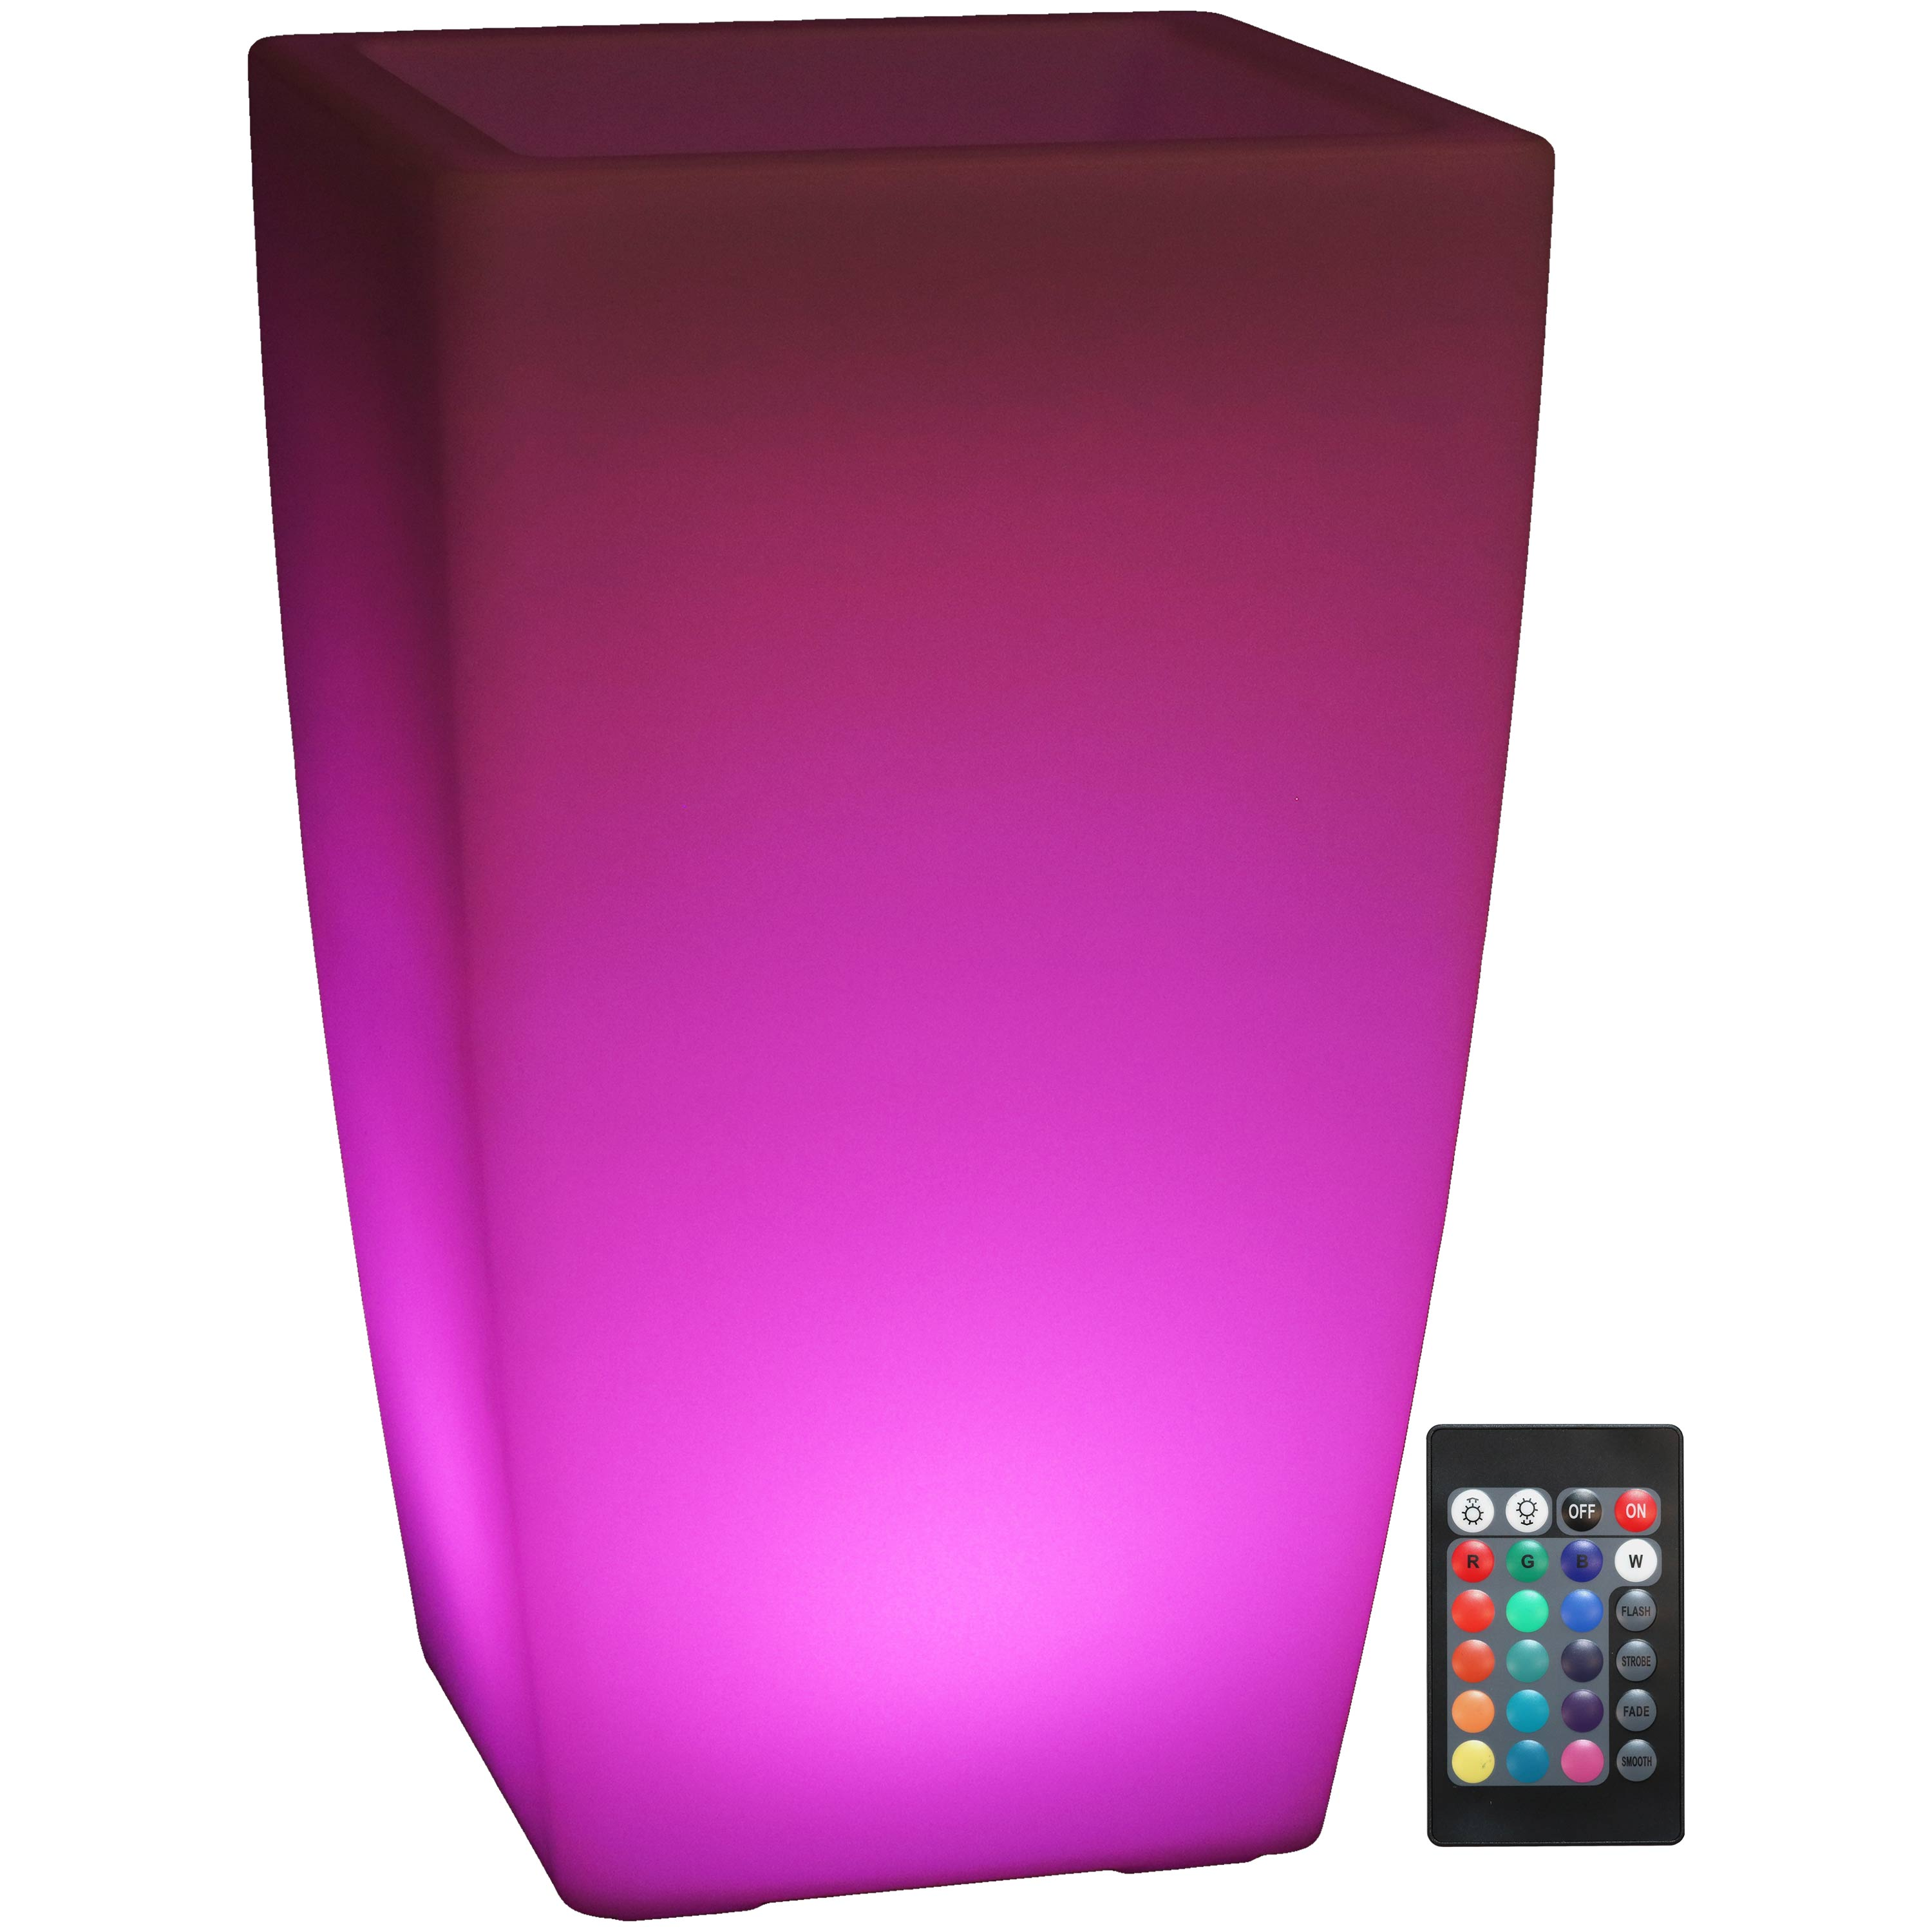 Led Light Square Flower Pot Remote Control Rechargeable Battery Rgb Color Changing Tall Photo